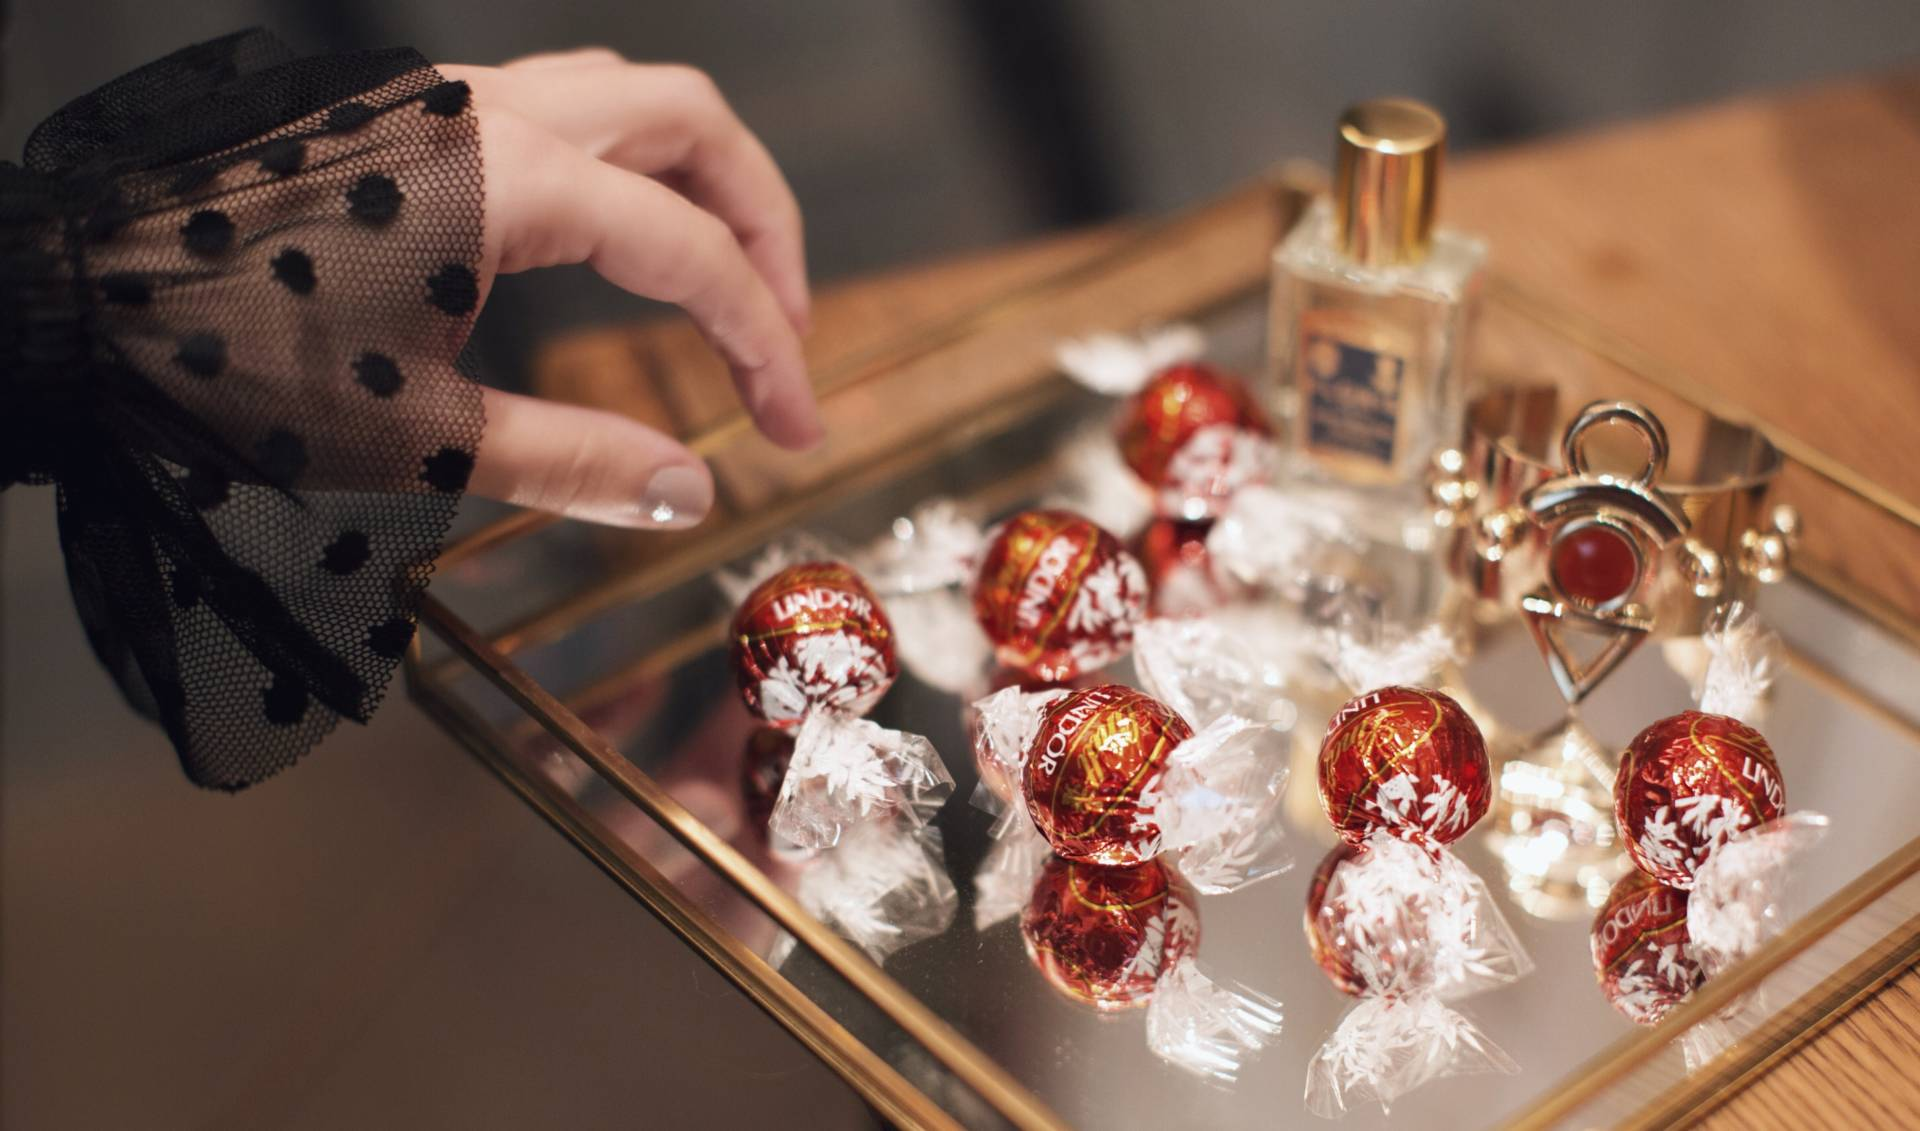 A moment of bliss with Lindor